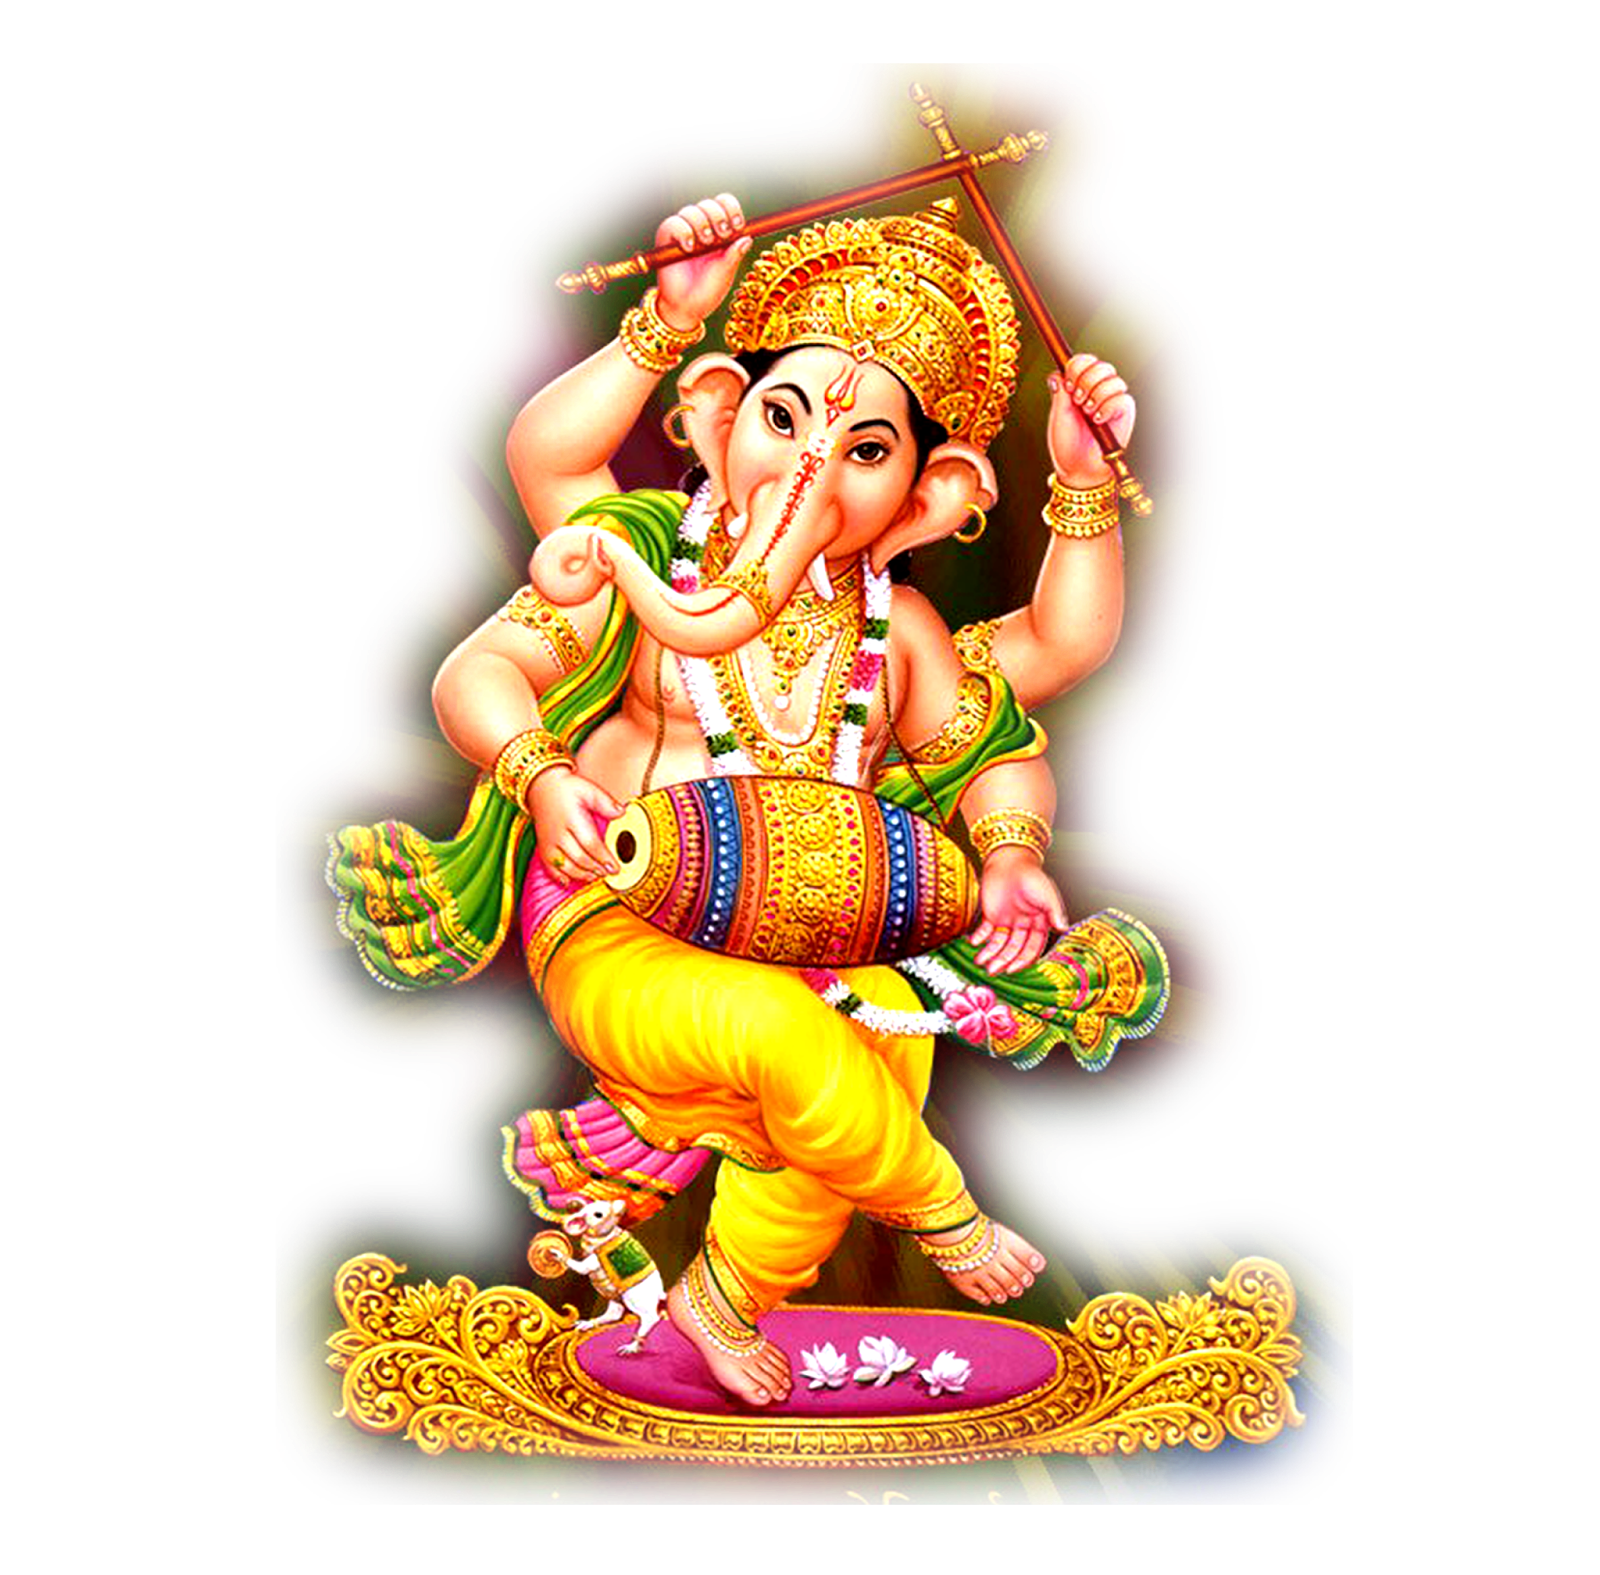 Ganesh Chaturthi Poster with